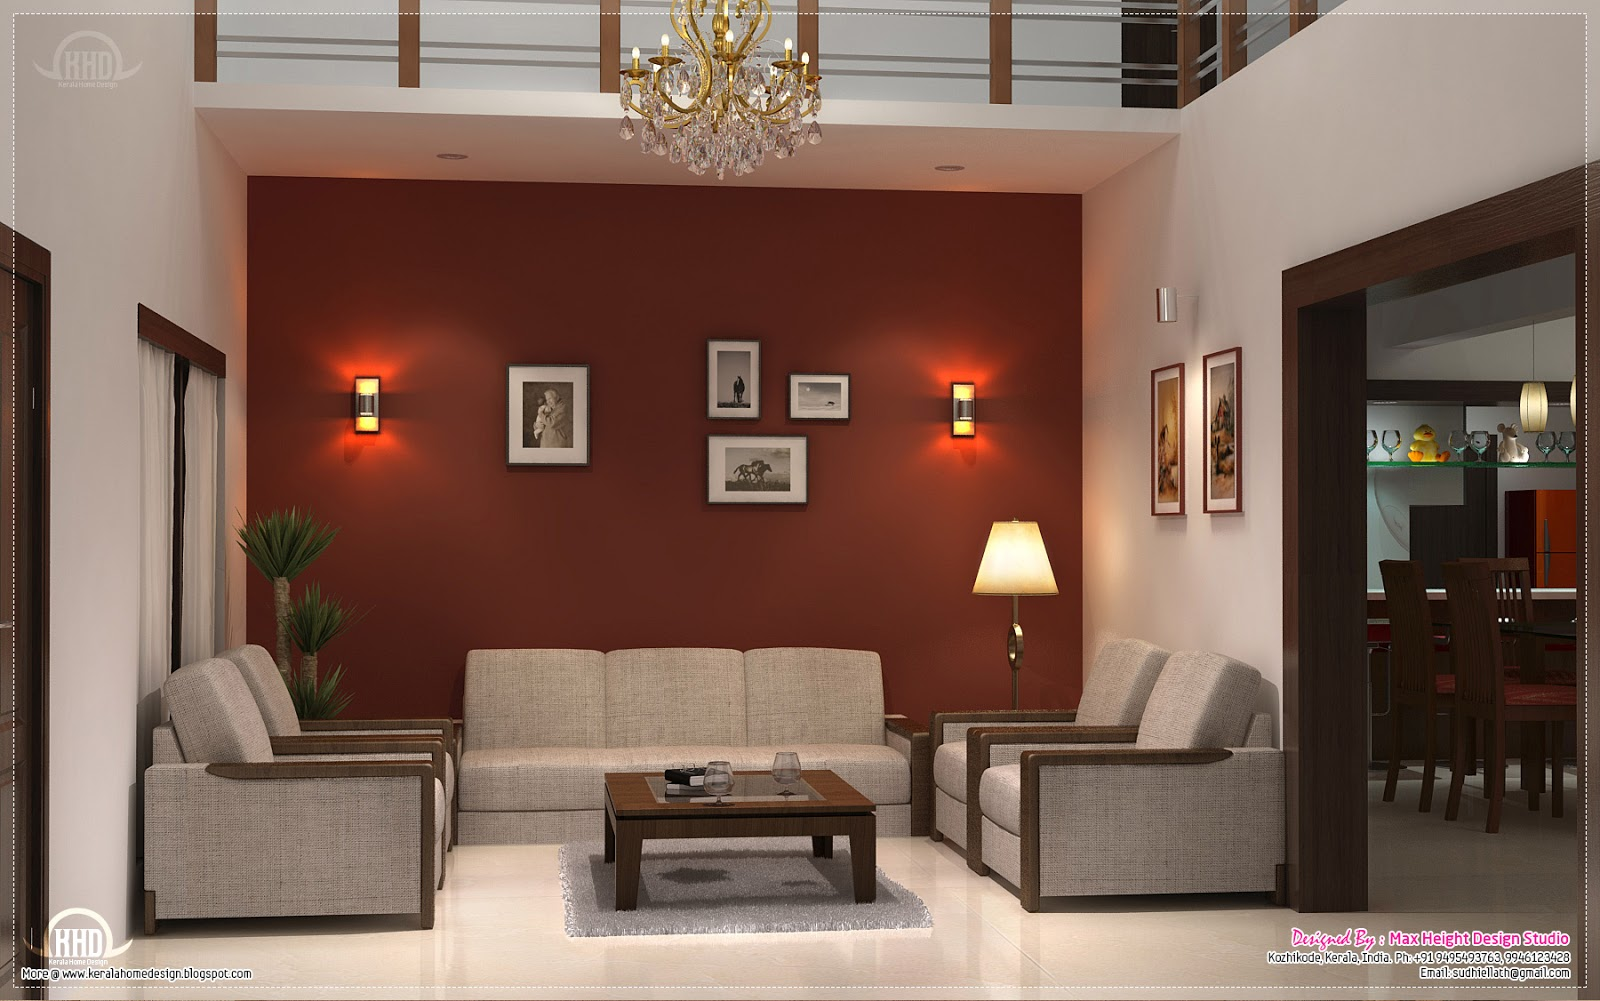 Home interior design ideas home kerala plans for Dining room ideas kerala